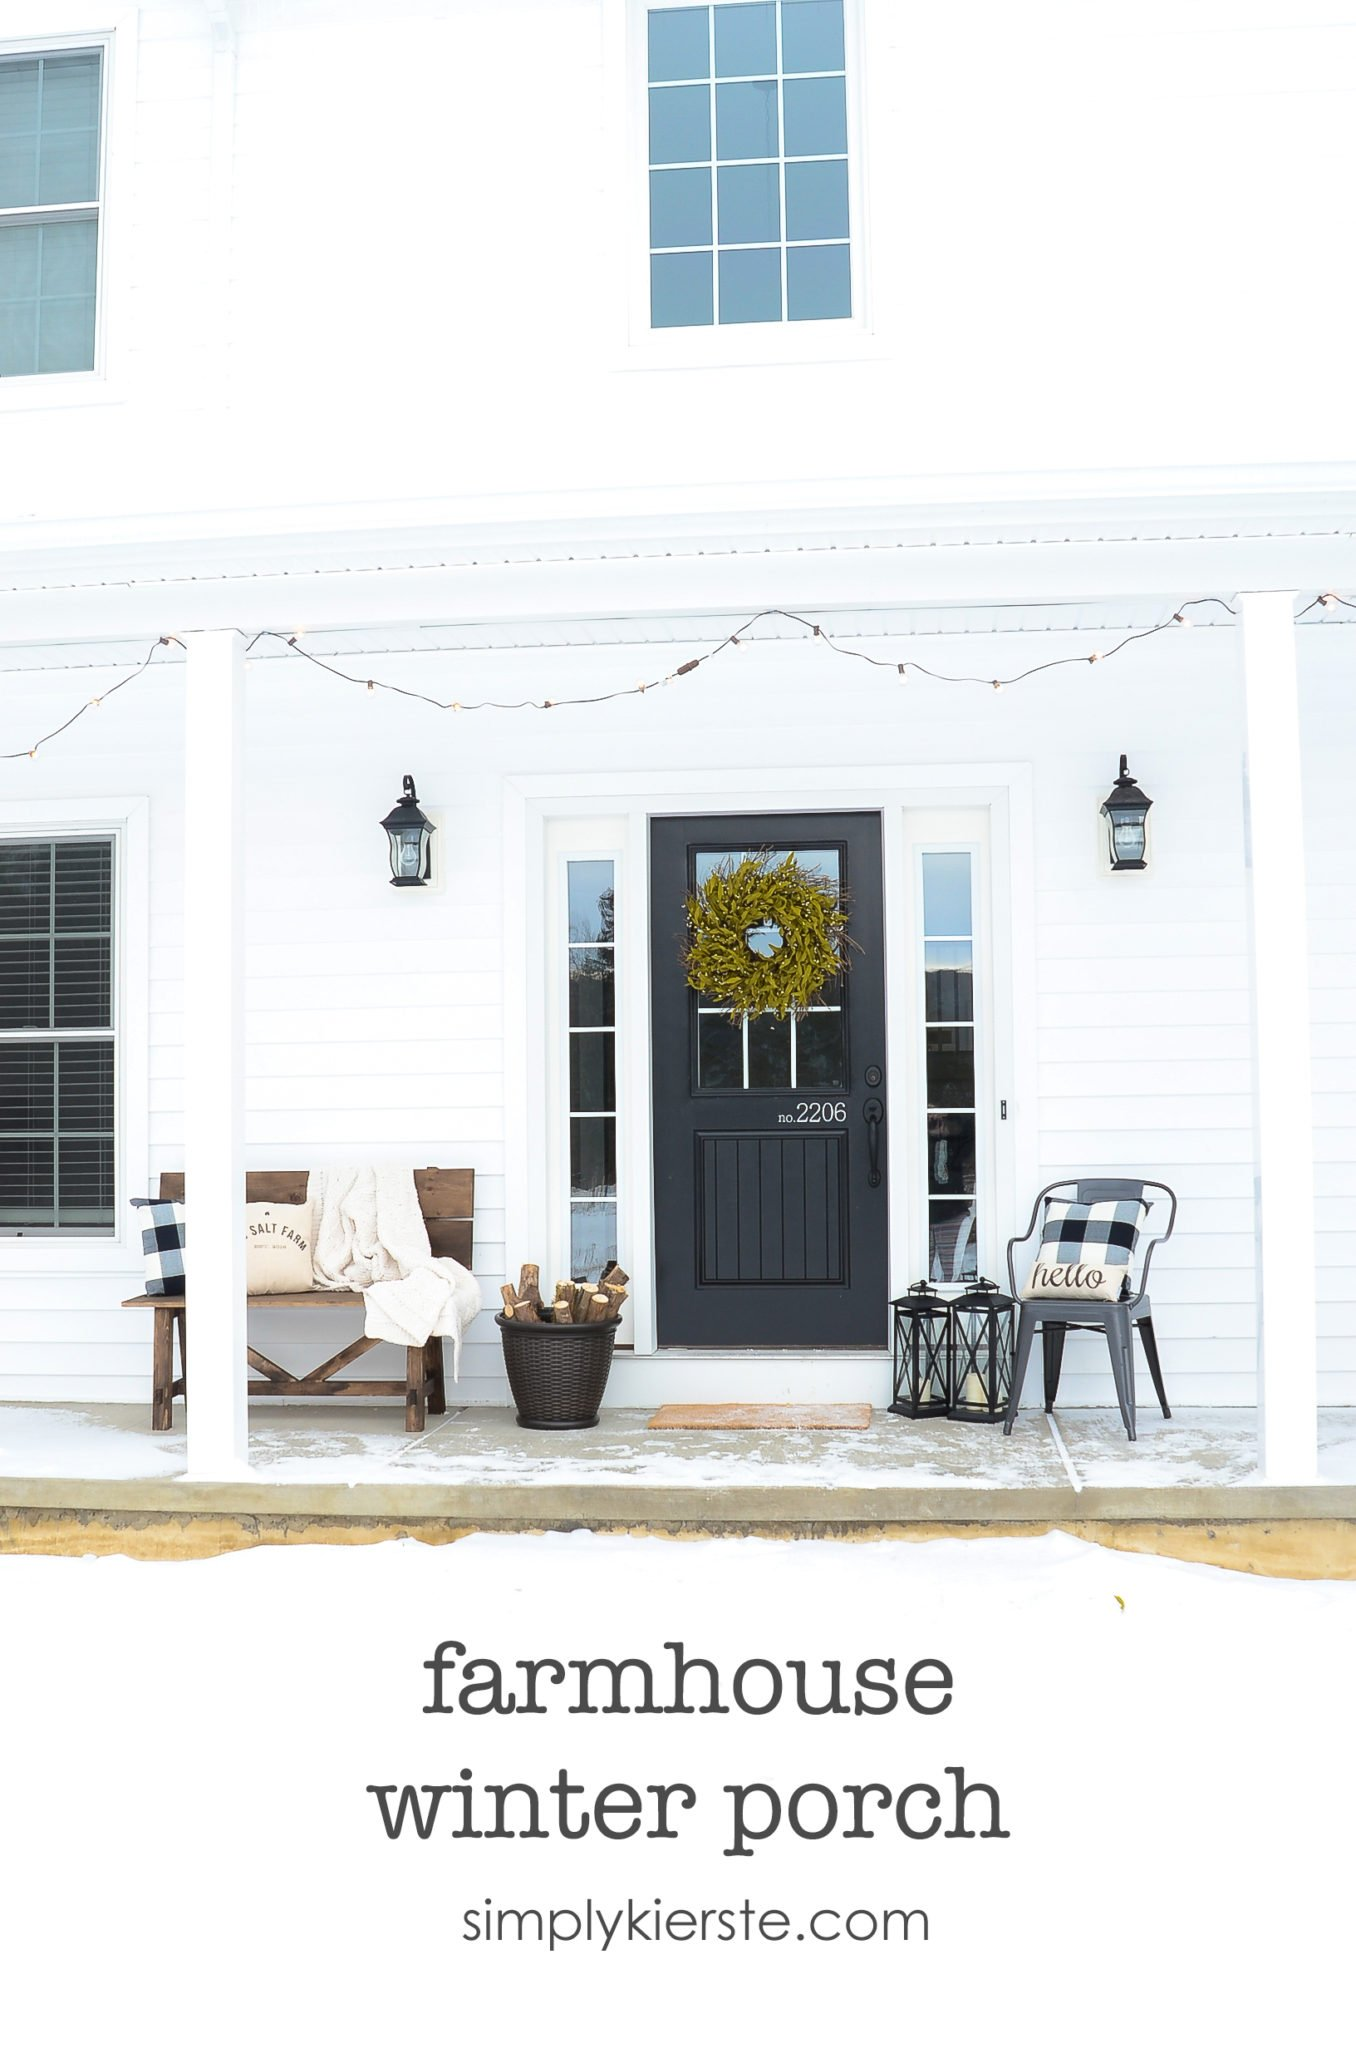 My Farmhouse Winter Porch - Simply Kierste Design Co.